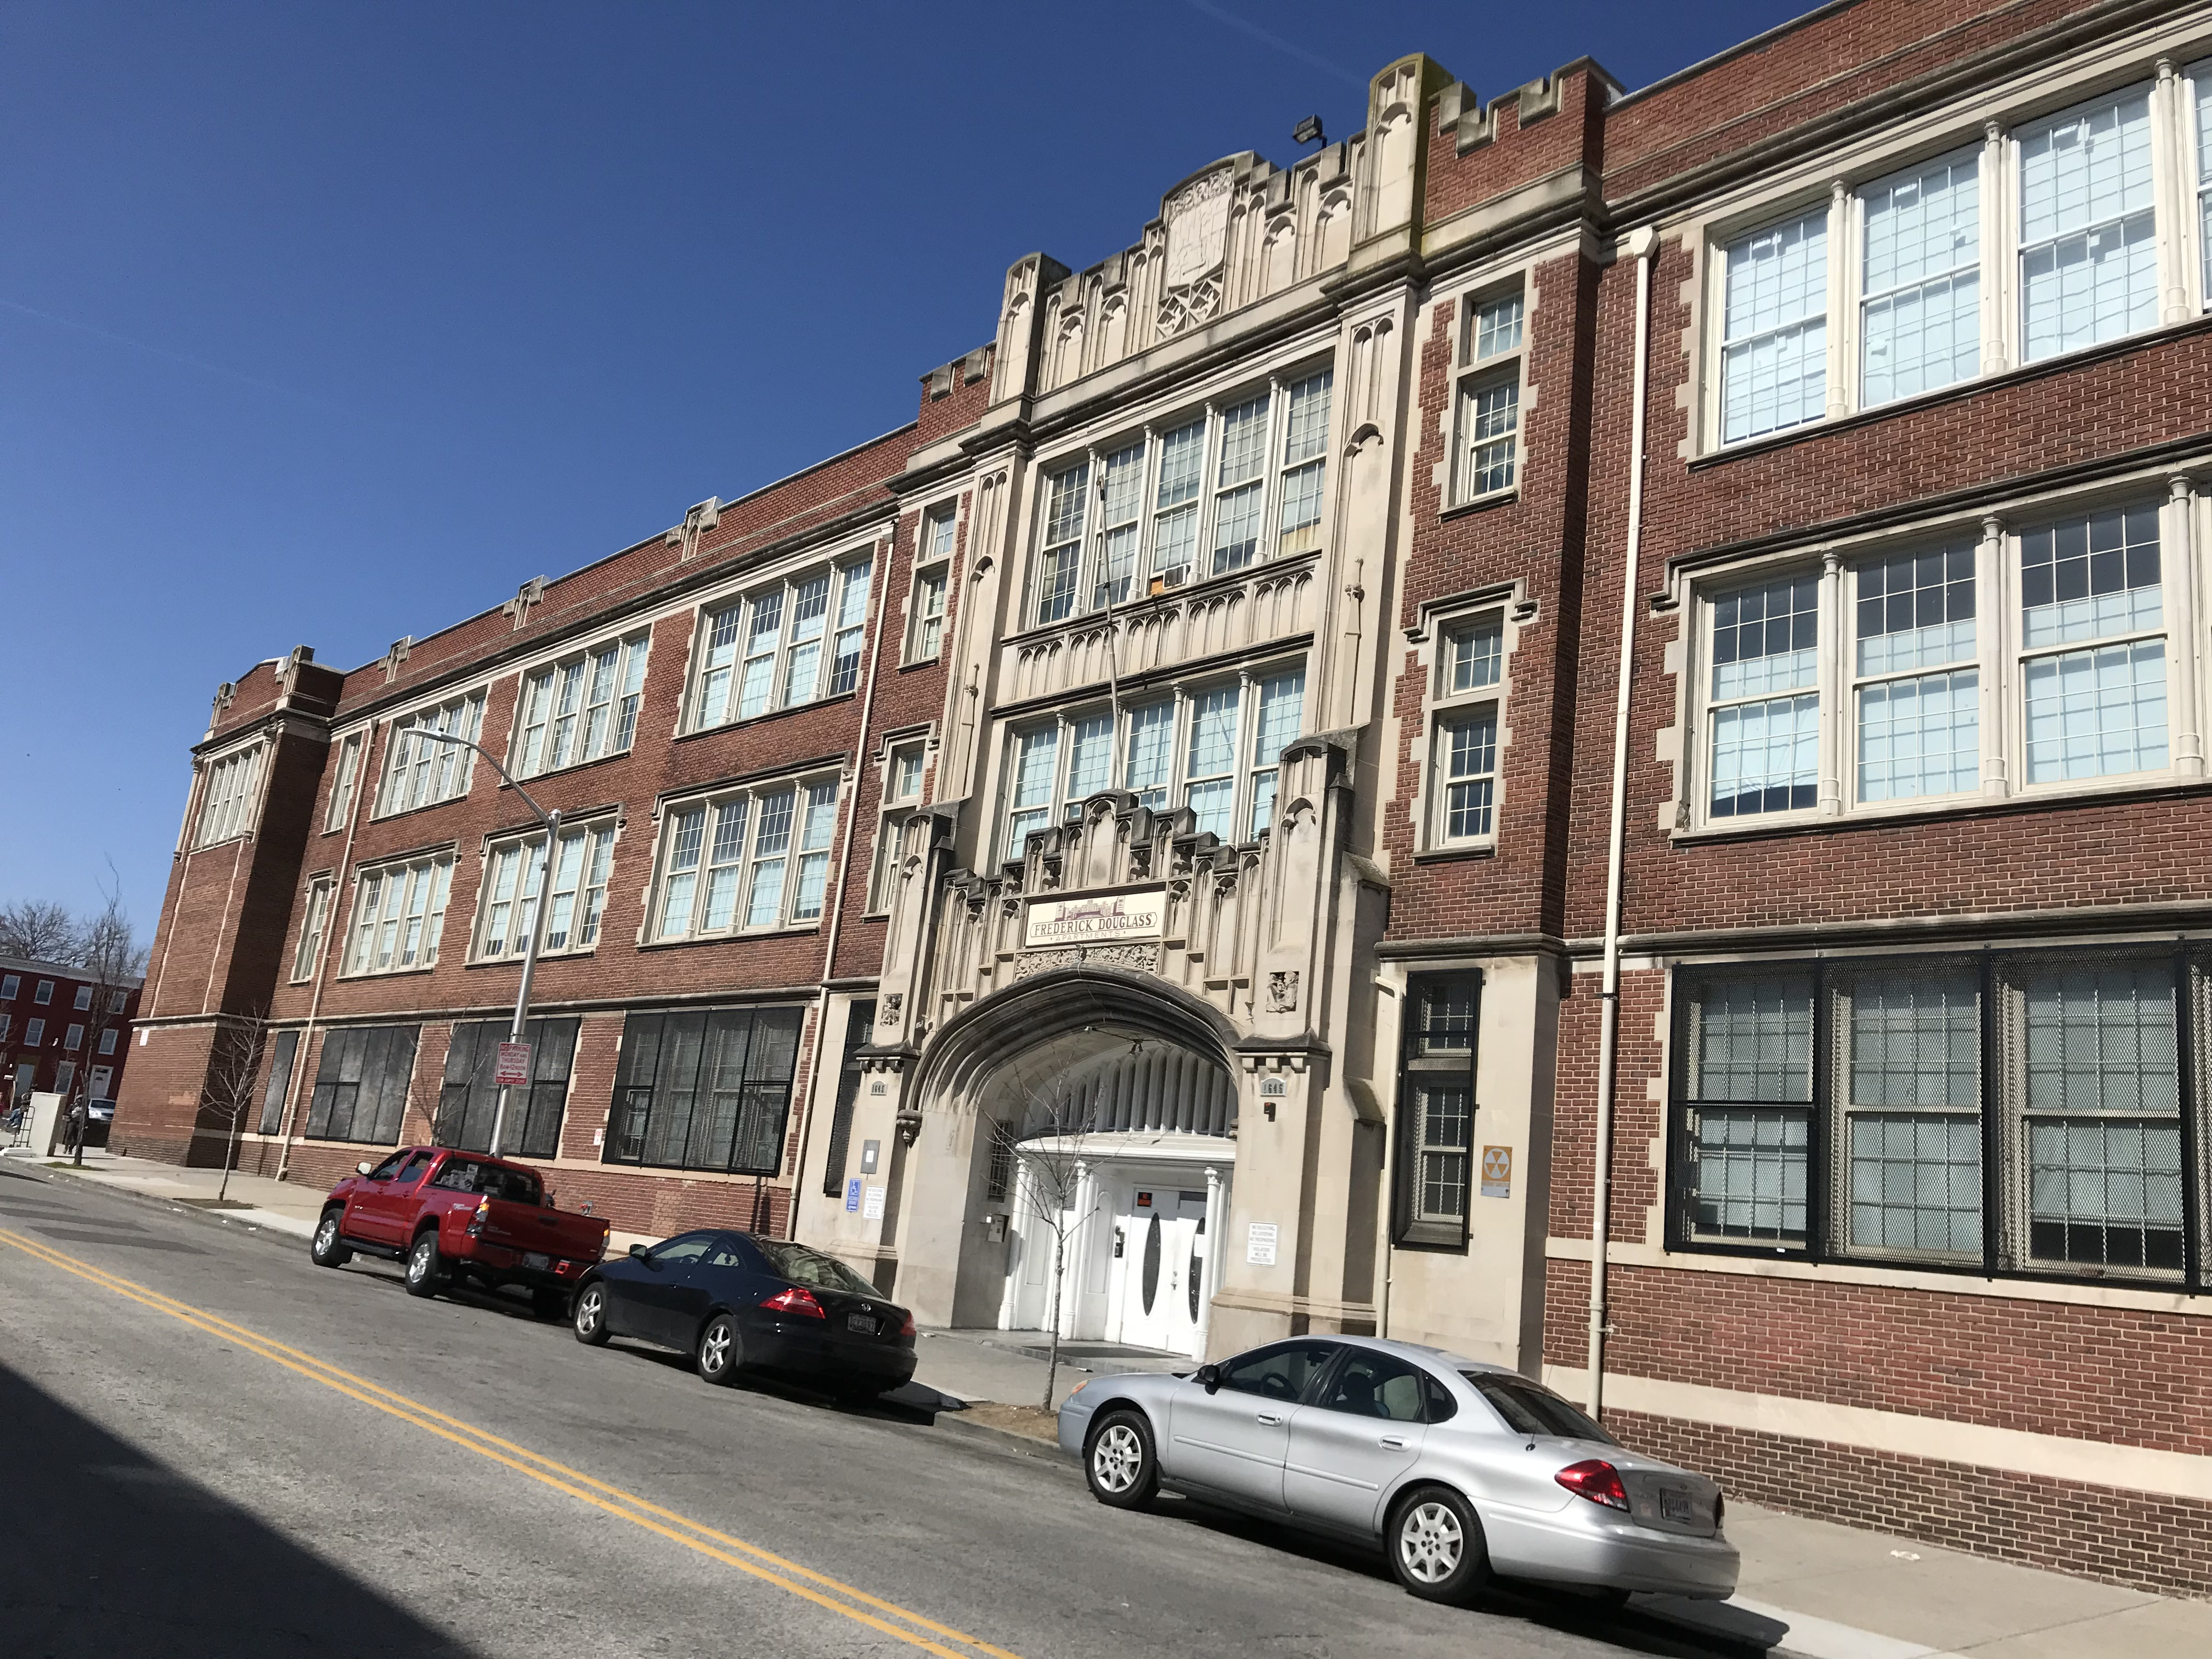 Old Frederick Douglass High School (1924; Owens and Sisco, architects), 1645 N. Calhoun Street, Baltimore, MD 21217, Architecture, Baker Street, Baltimore, Baltimore City Public Schools, HQ Photo